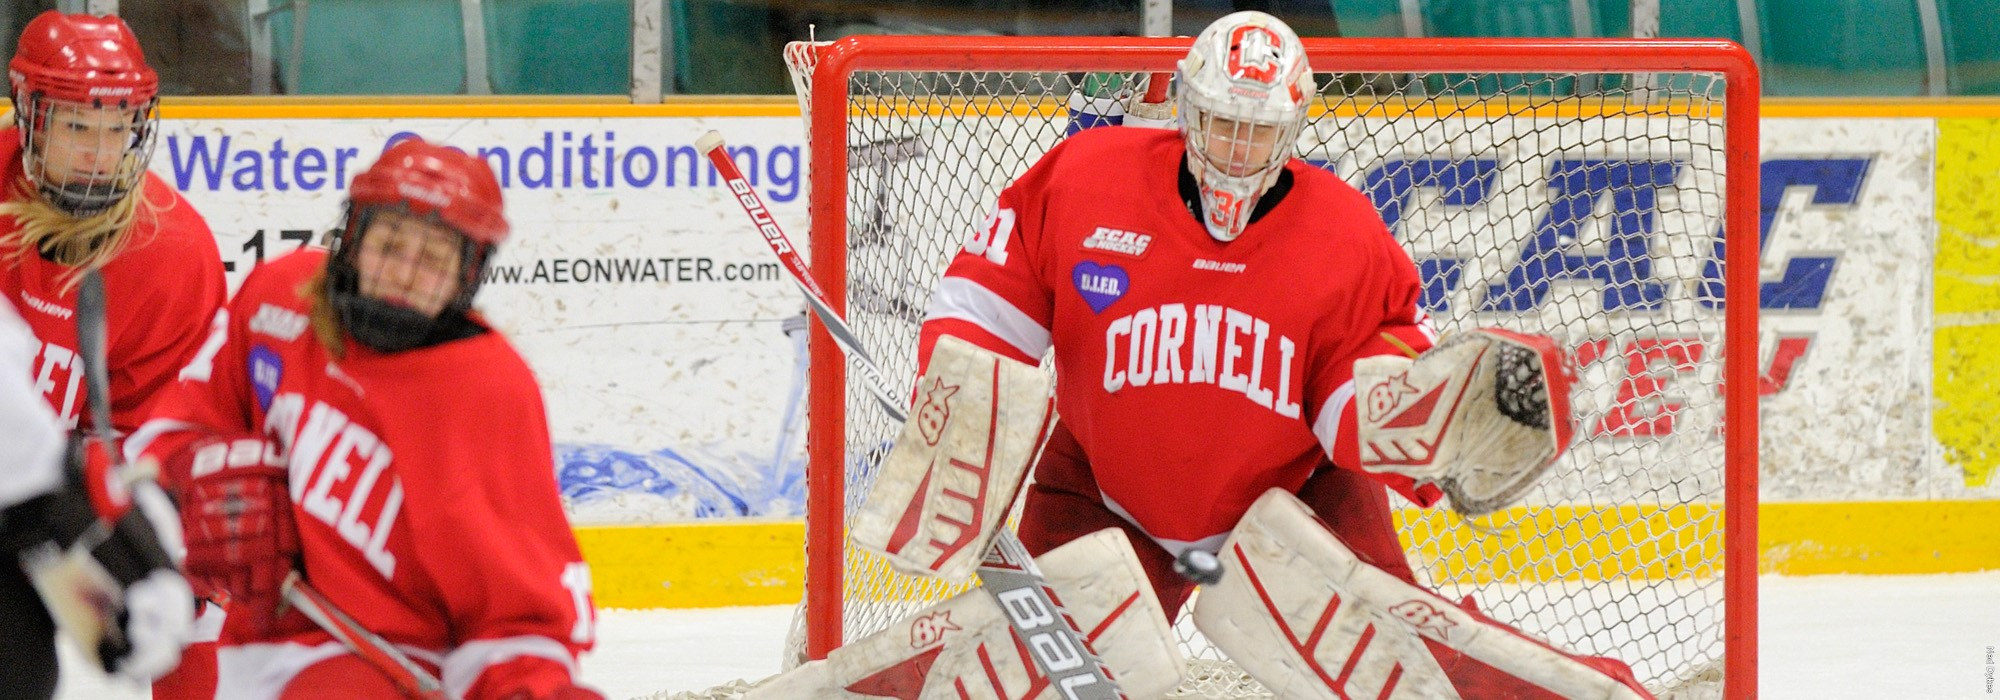 Cornell Falls to Clarkson in NCAA Quarterfinals